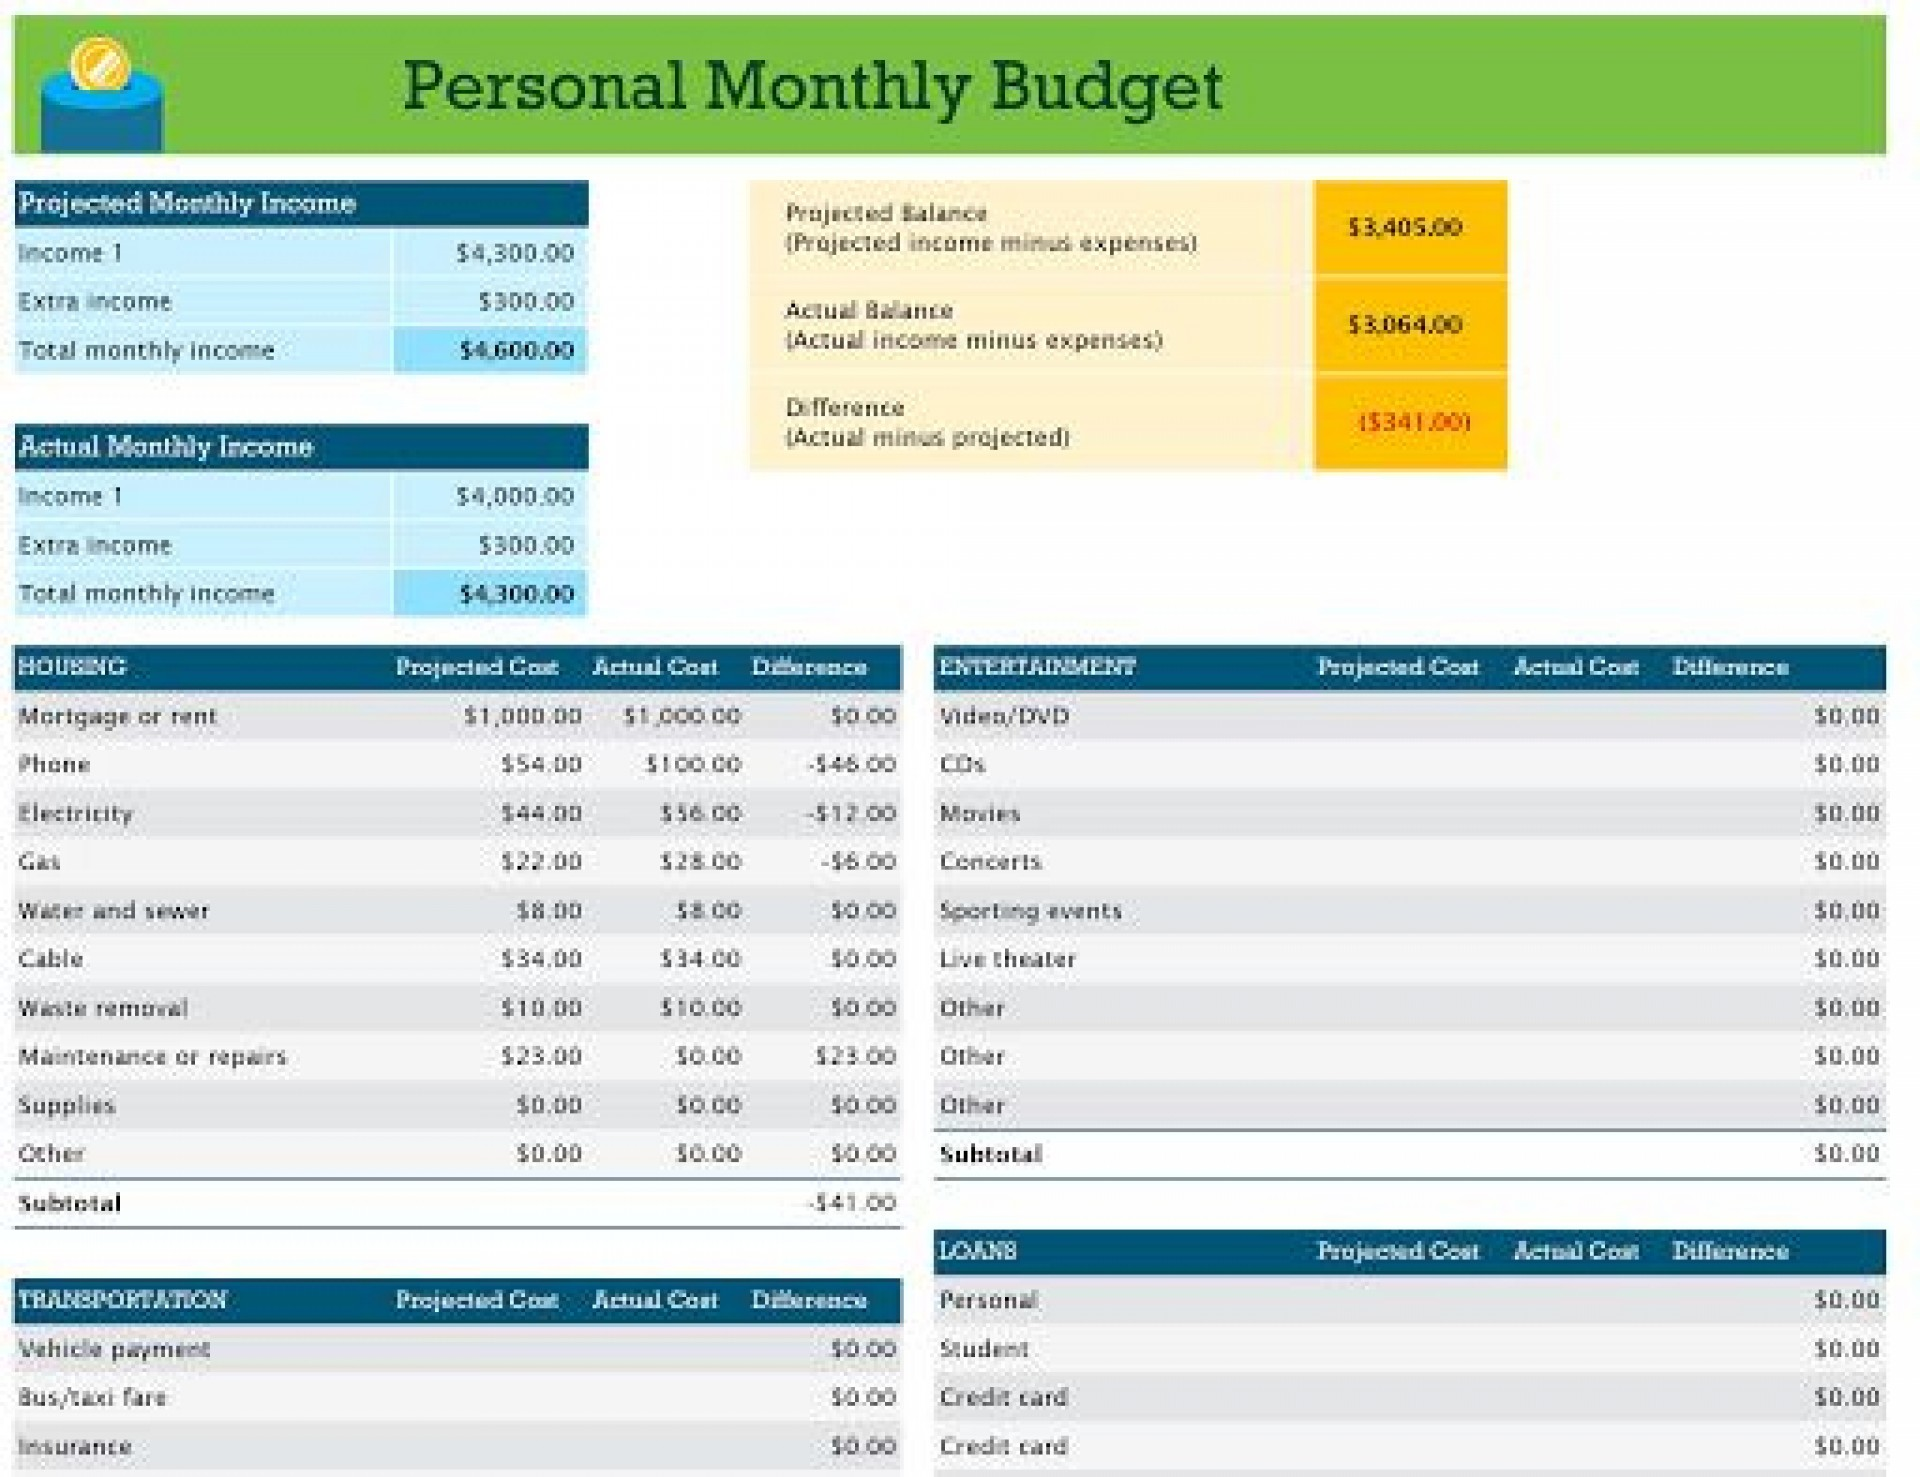 009 Magnificent Microsoft Excel Personal Budget Template Photo  Monthly1920